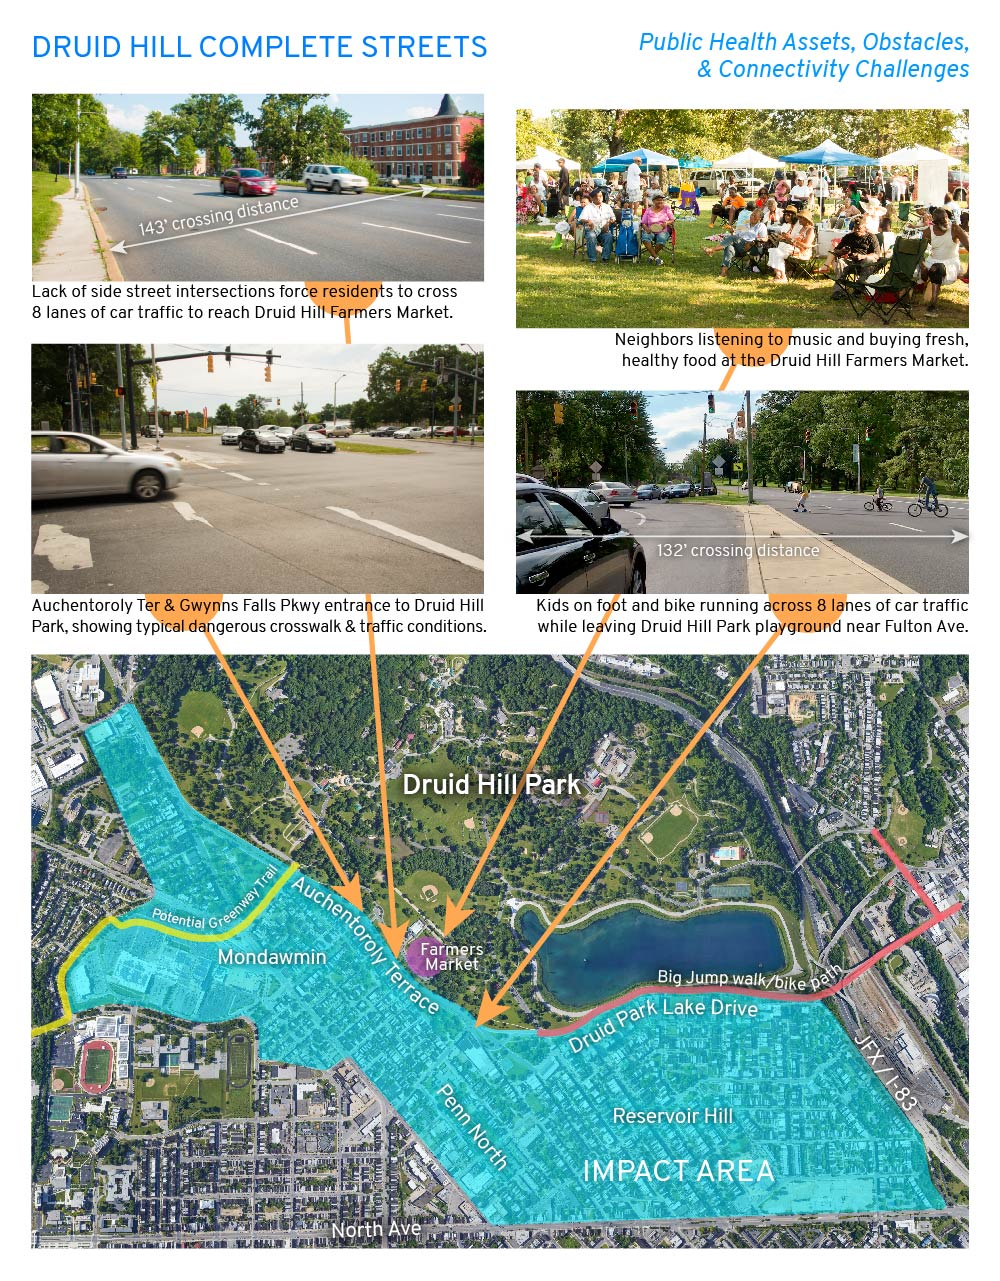 Druid Hill Complete Streets map and challenges